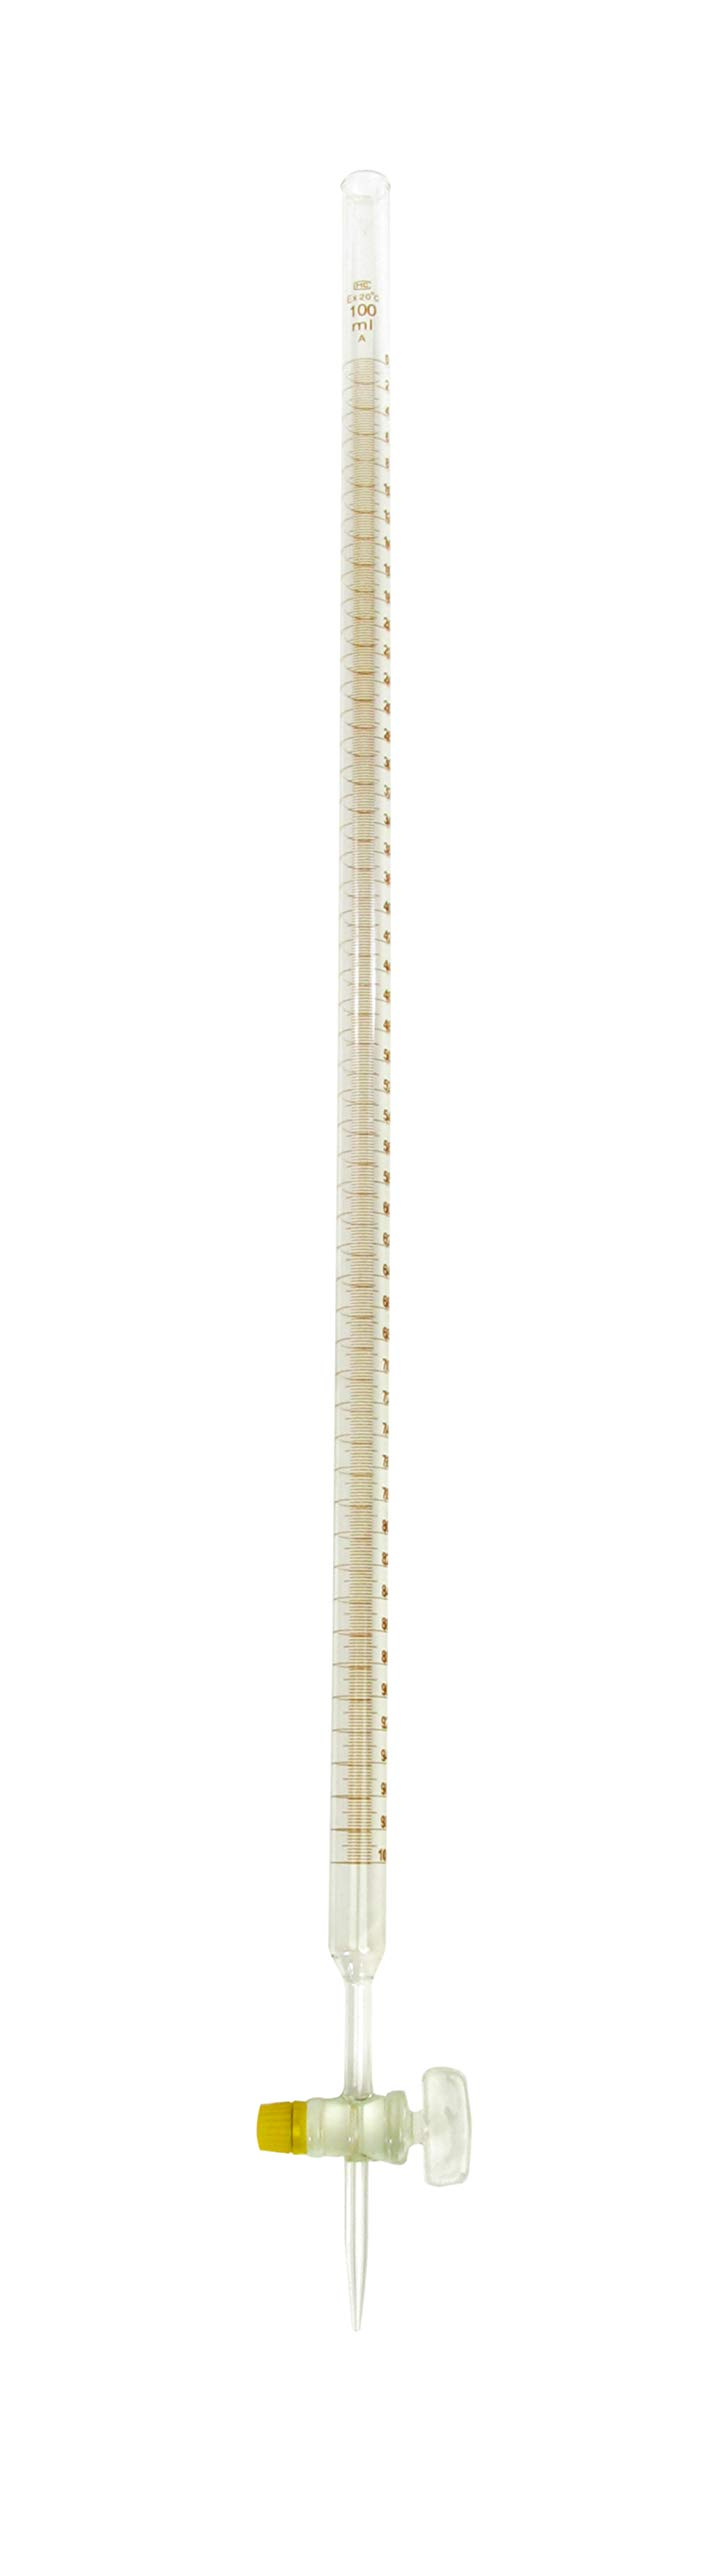 American Educational Borosilicate Glass 100mL Burette, with Ground Glass Stopcock by American Educational Products